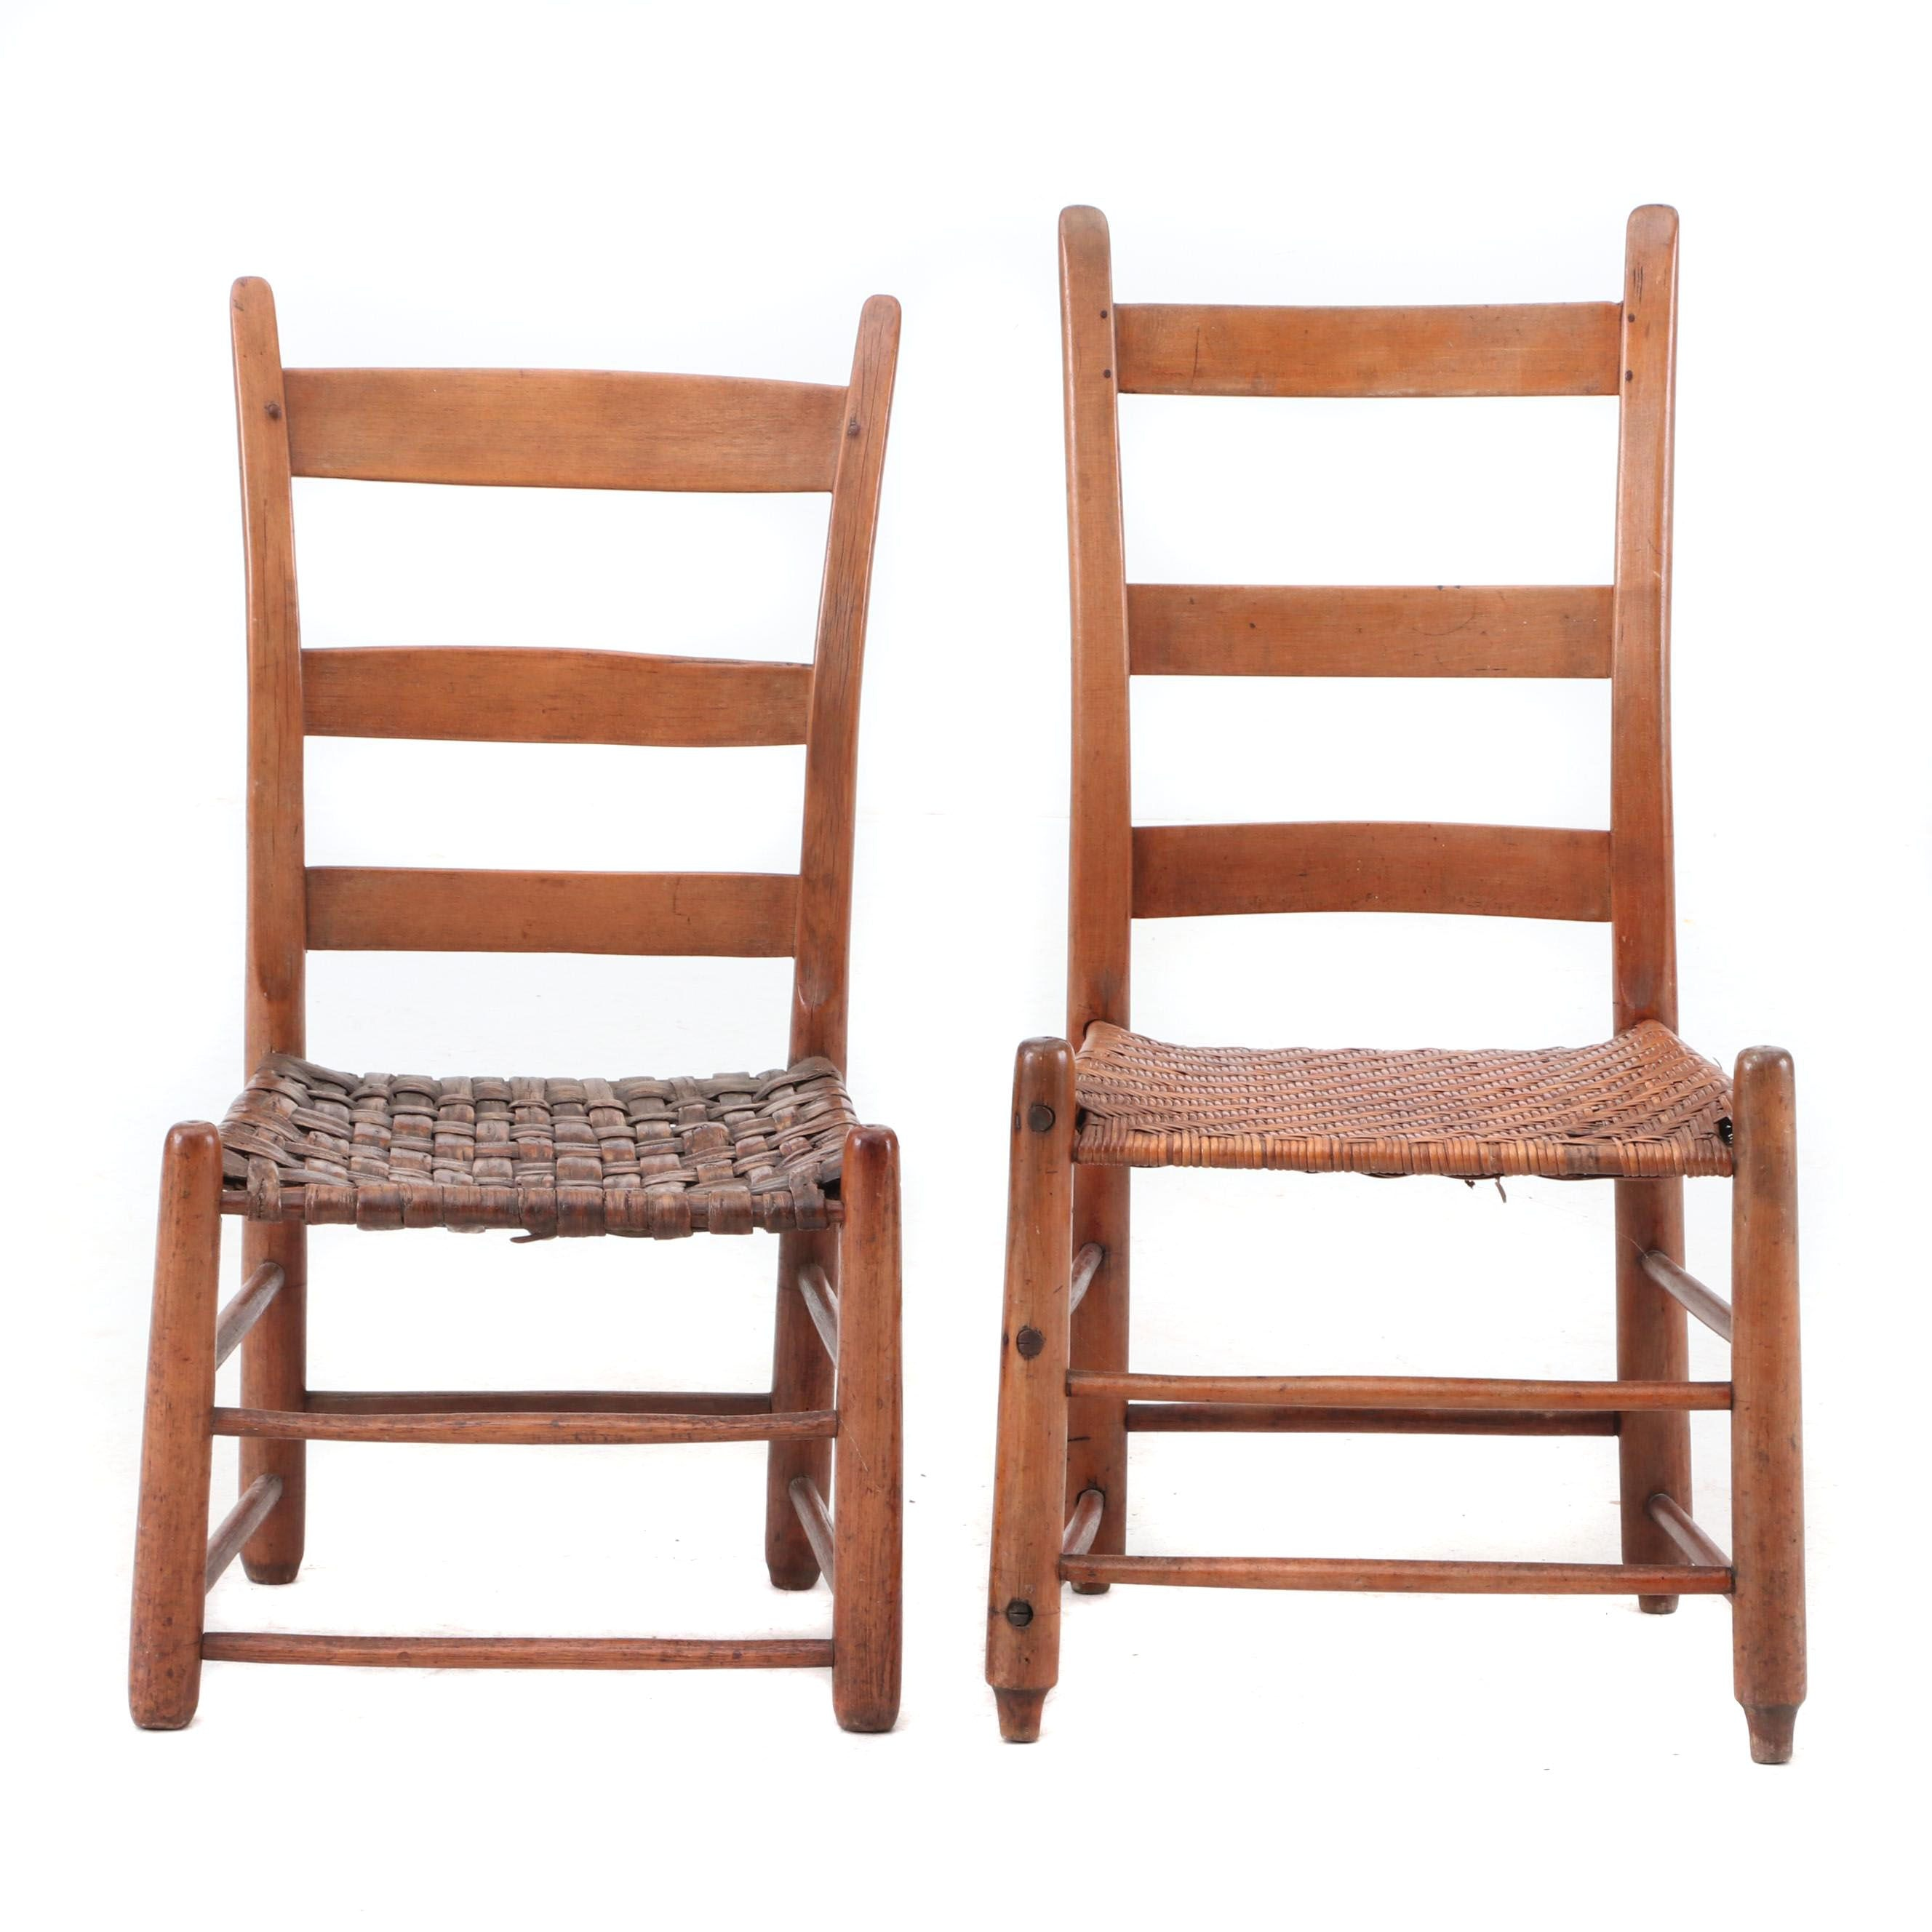 Pairing of 19th Century Ladder-Back Chairs